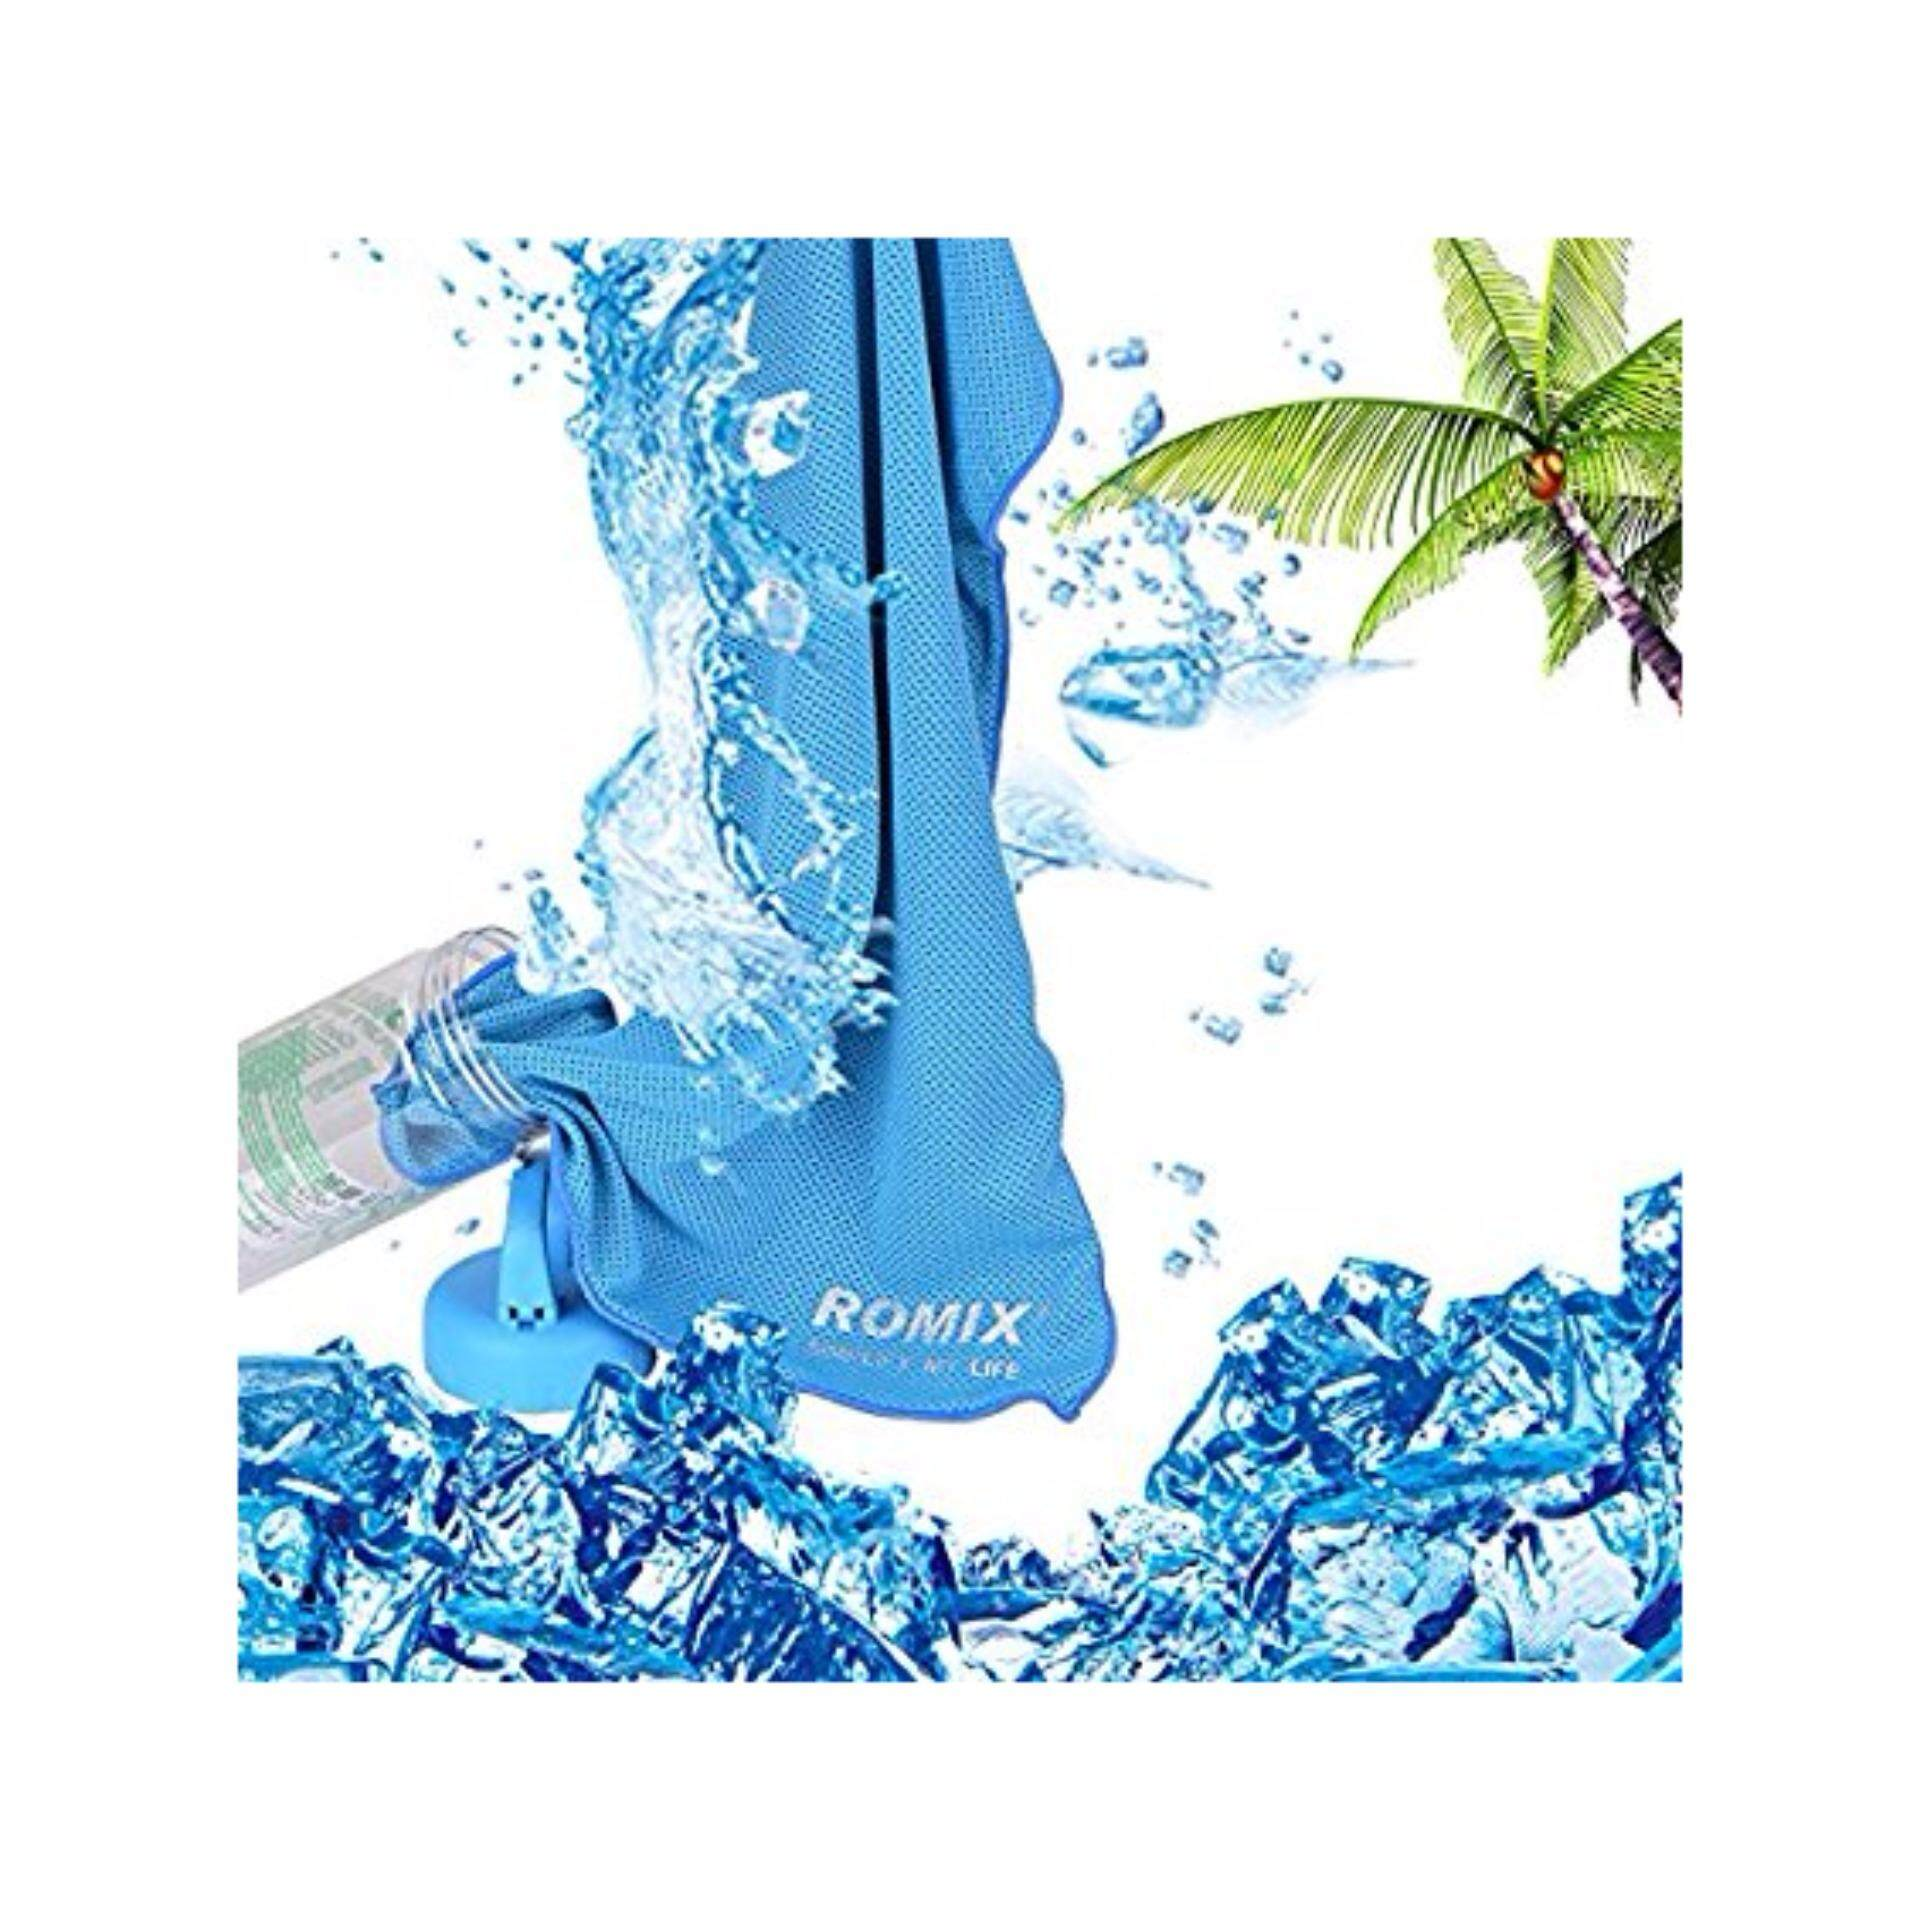 Myit New Arrival Strepsils Cool 12 Sachet 72 Pcs Cooling Towel Romix Ice Reuseable Running Cycling Hiking Outdoor Sports